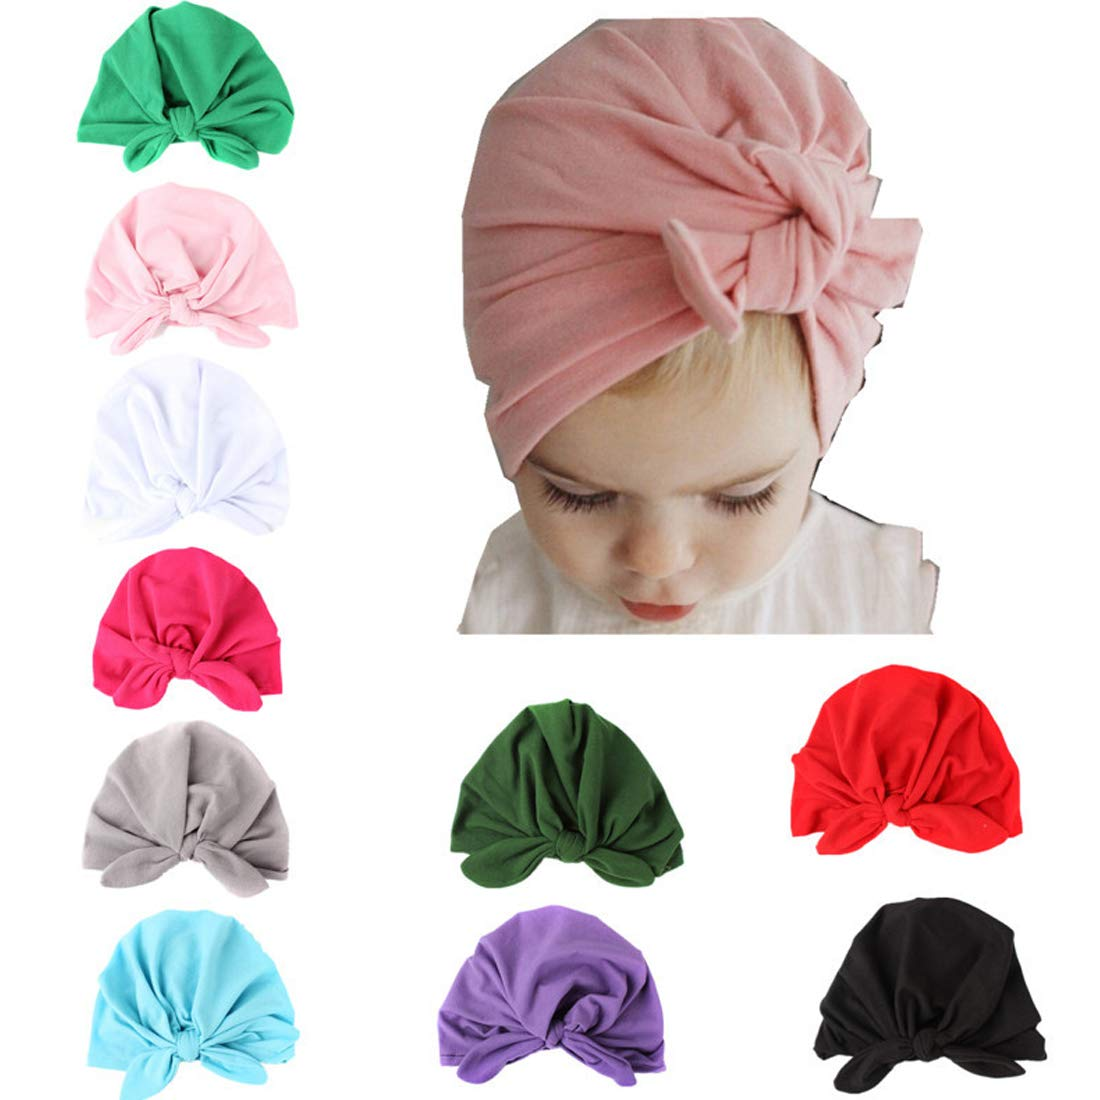 Simoda Adorable Baby Girls Beanie Hats Cotton Nursery Cap Turban Knot Hospital Hat